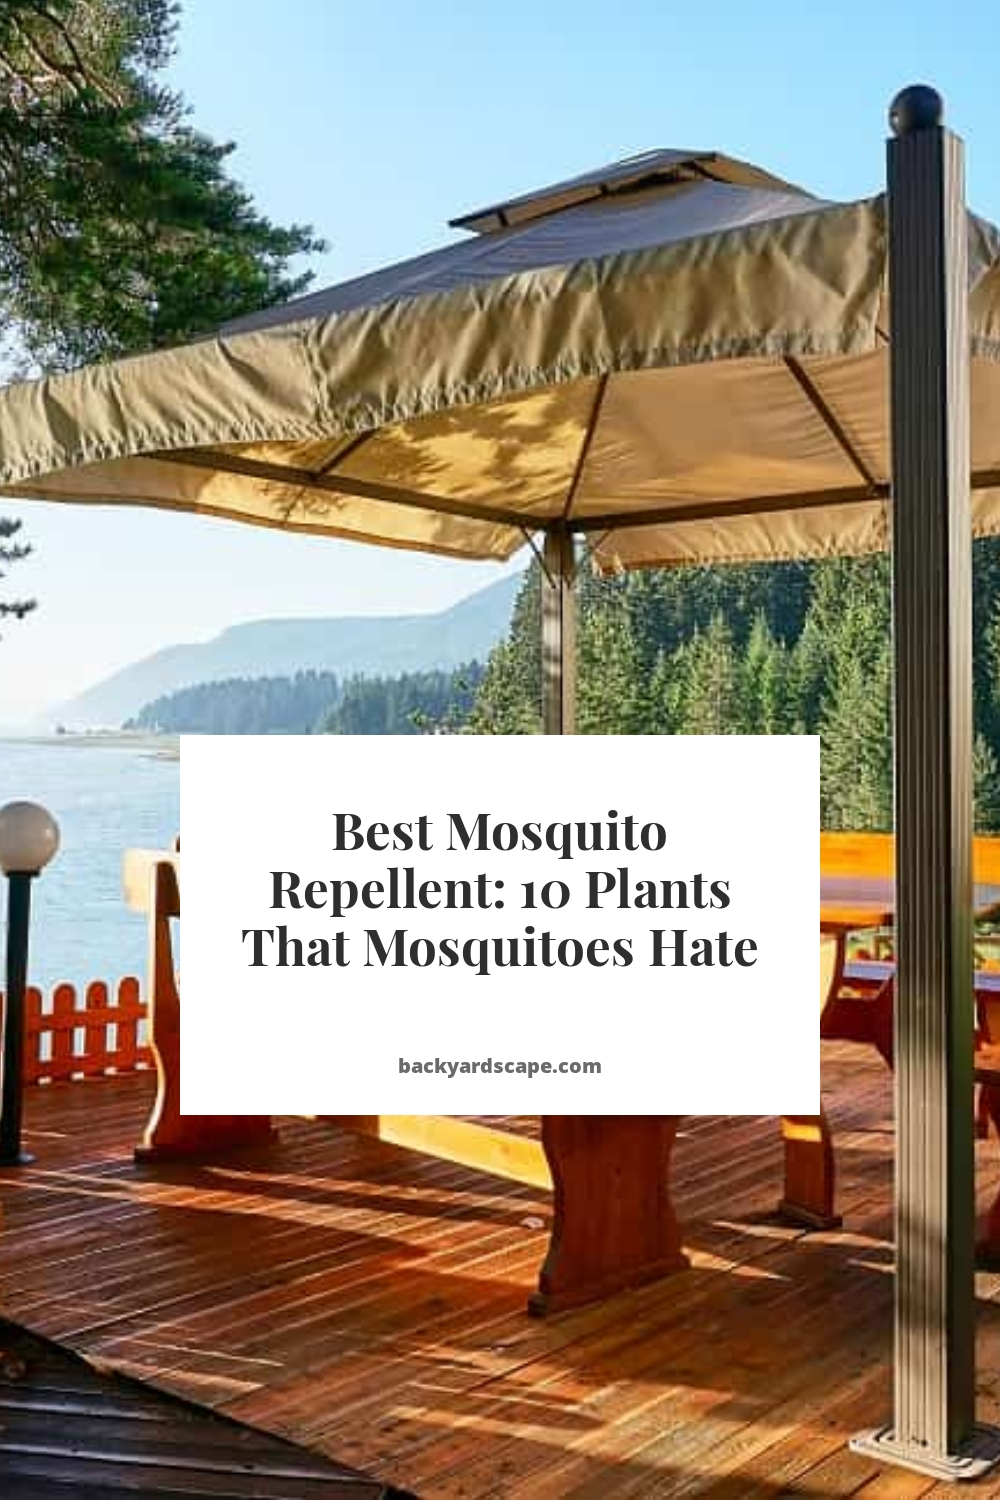 Best Mosquito Repellent: 10 Plants That Mosquitoes Hate